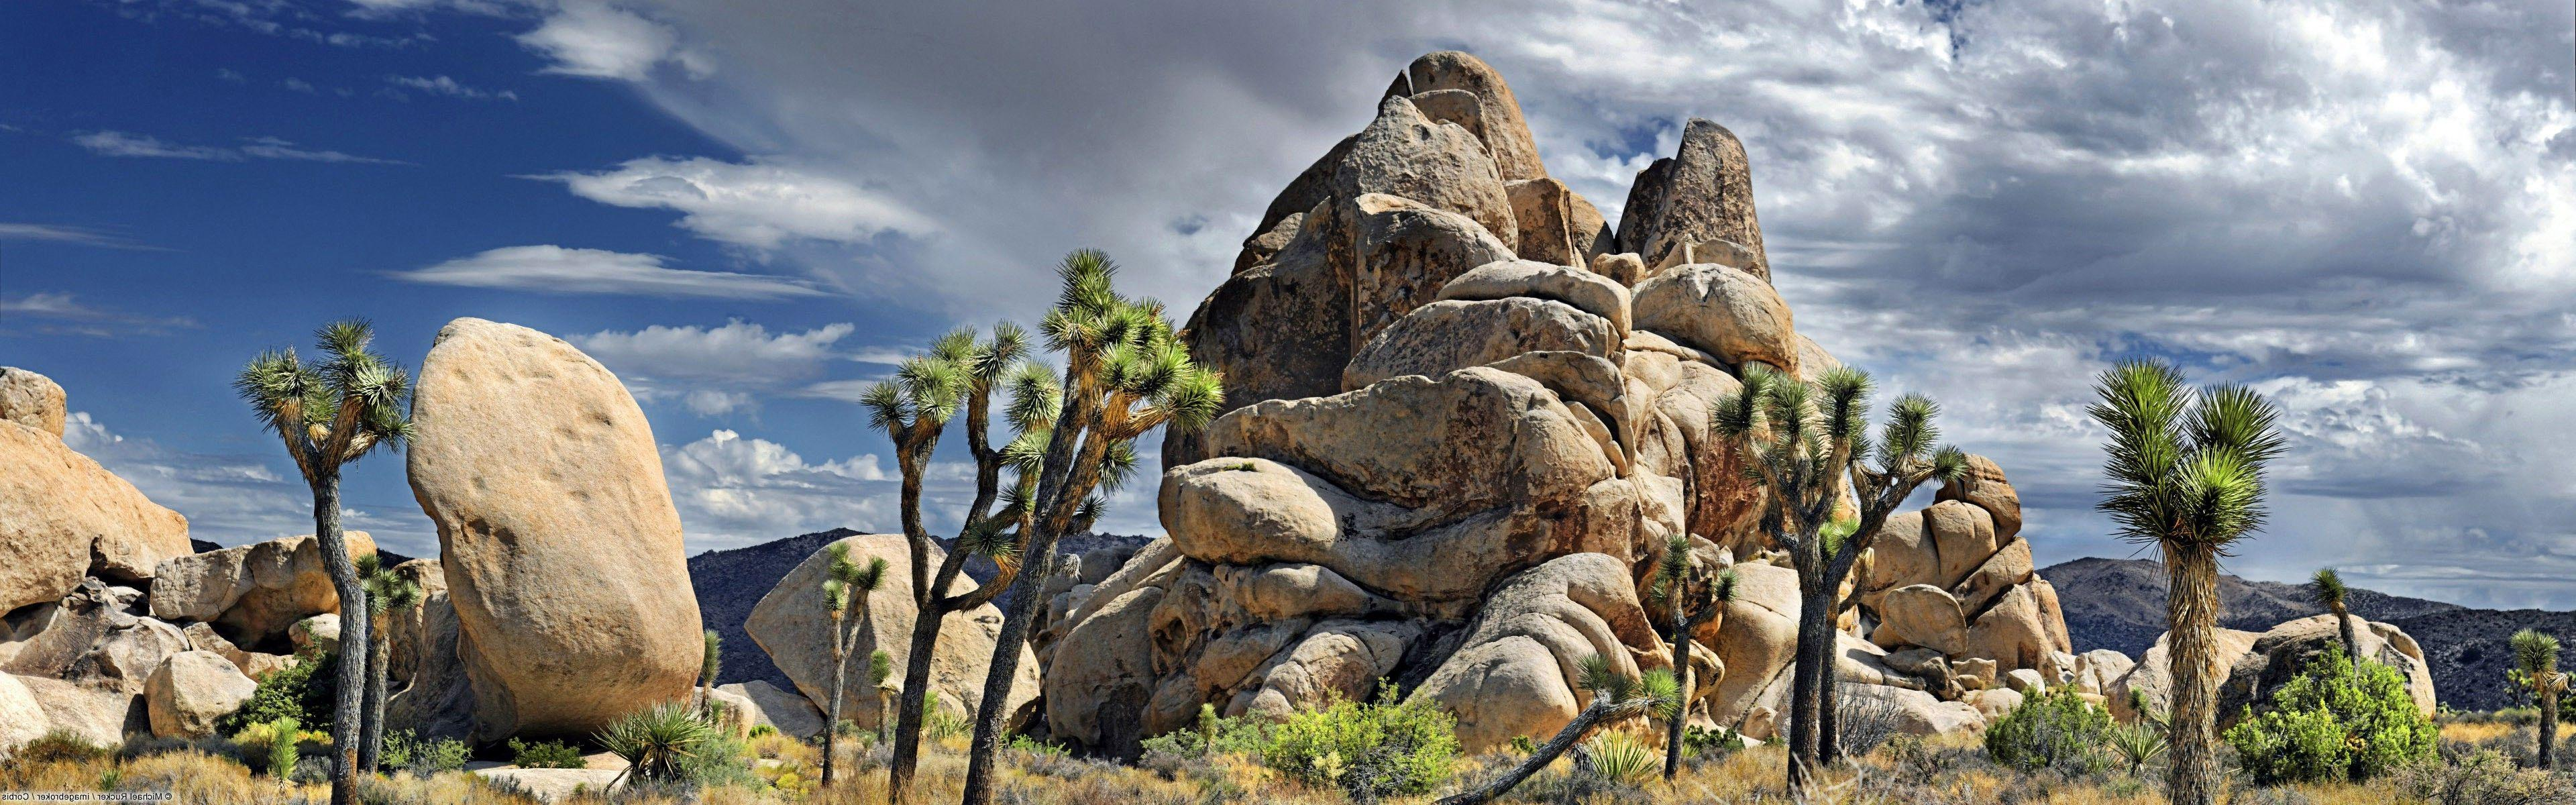 nature, Landscape, Rock, Joshua Tree National Park Wallpapers HD